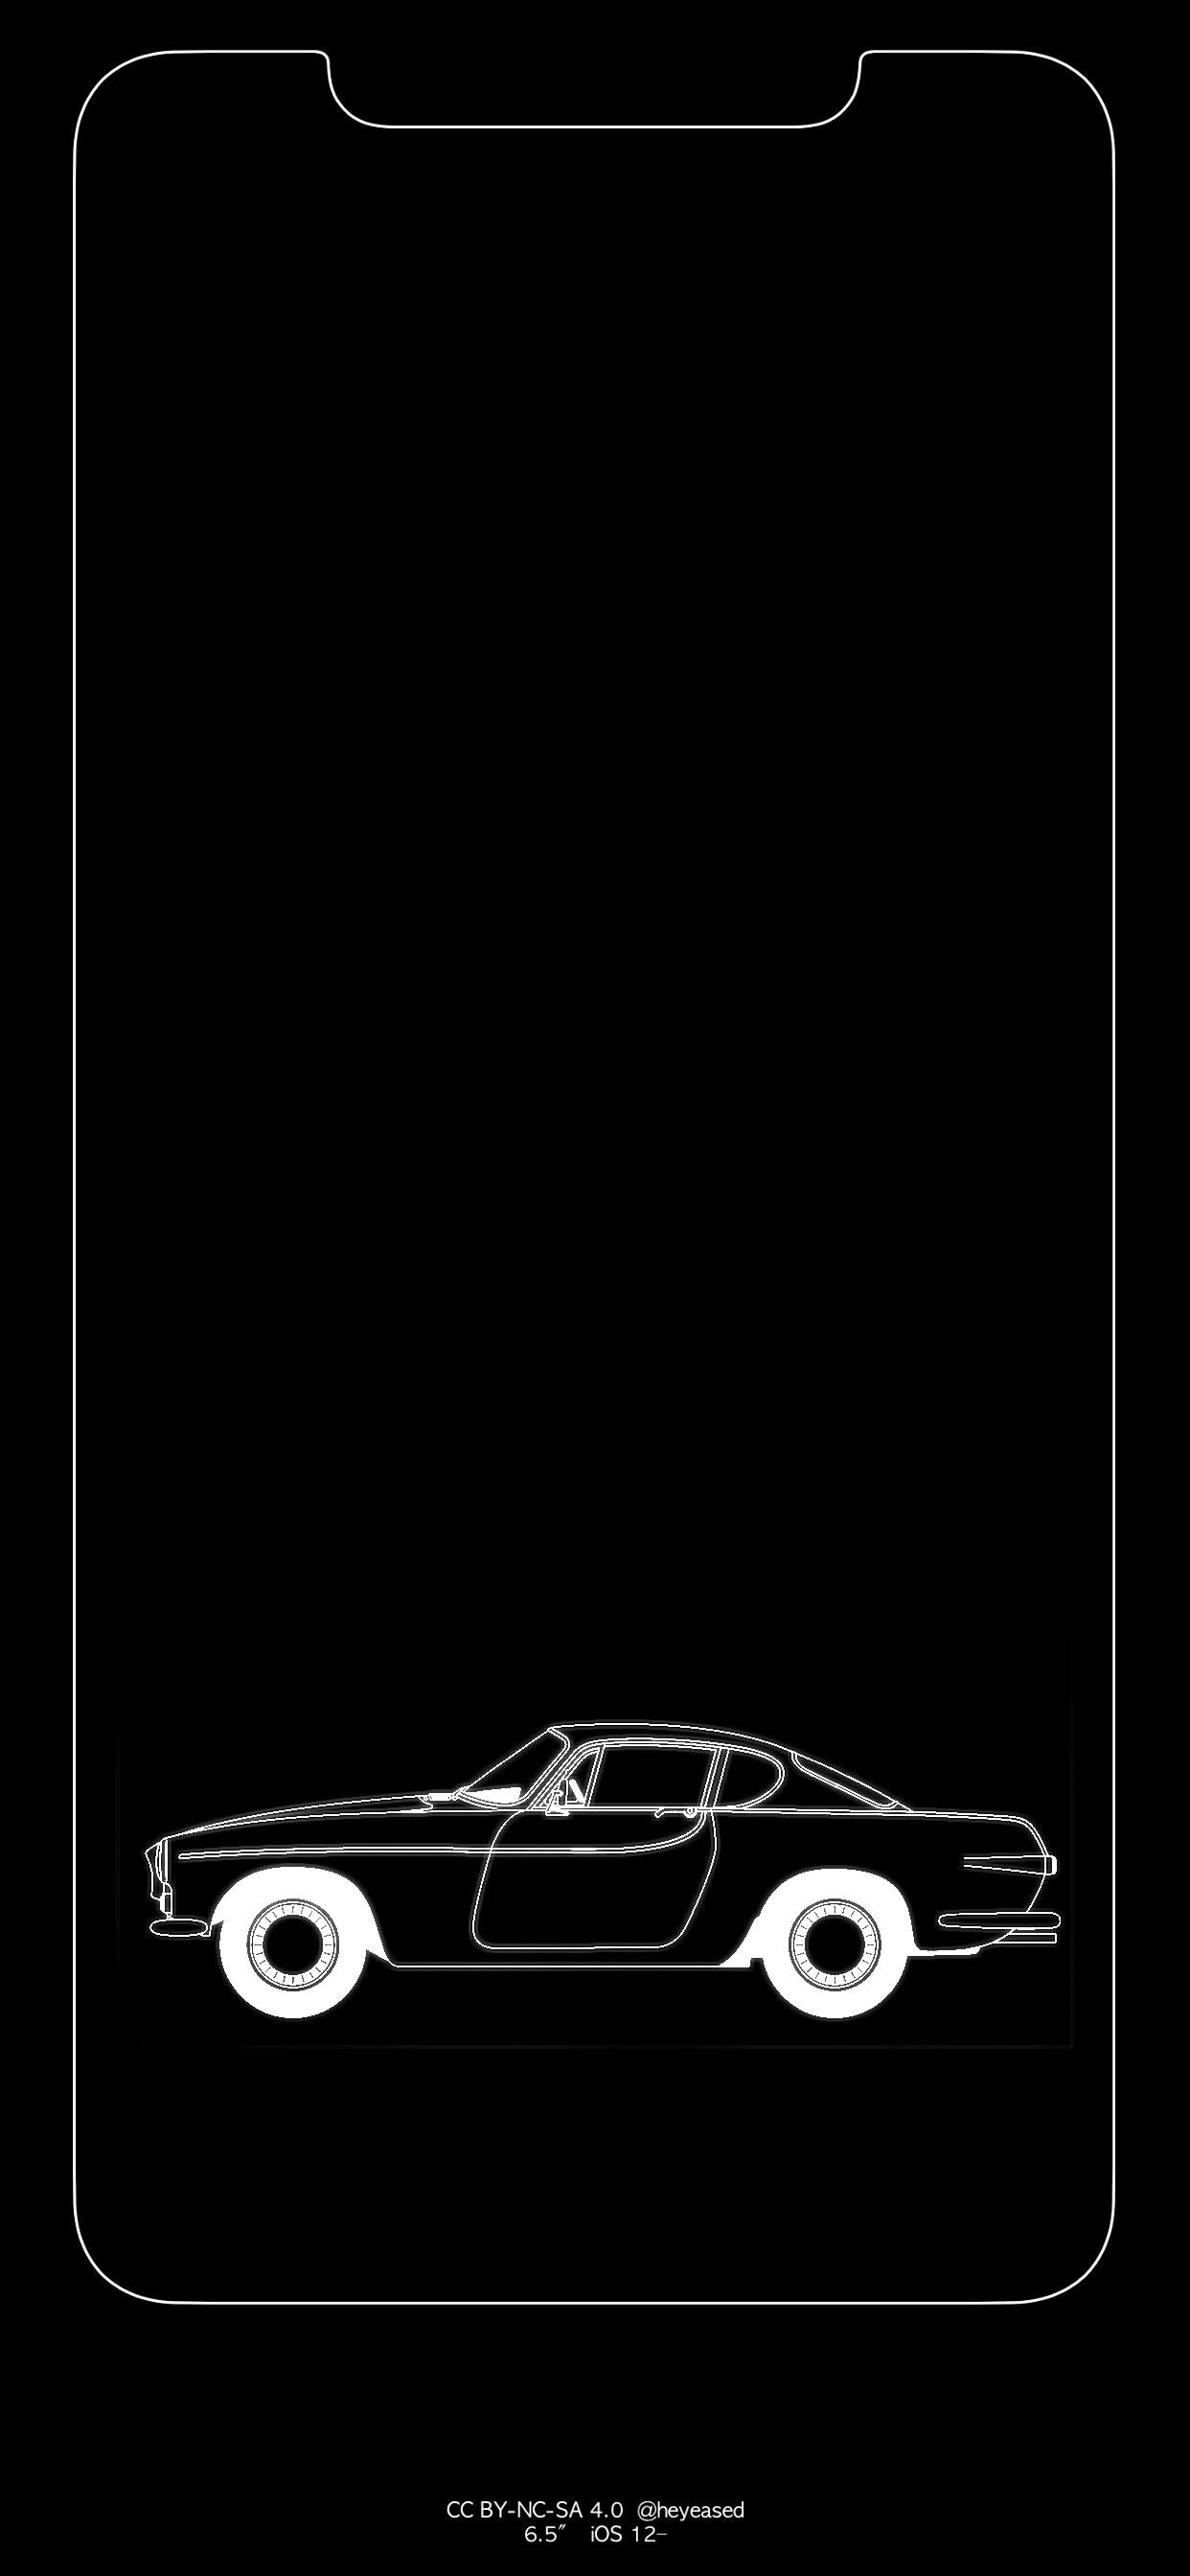 Iphone 11 Border Wallpaper : iphone, border, wallpaper, Wallpaper, IPhone, Max/11, Found, Online, Created, Outline, Really, Clean, Border., Apply, Correctly, Perfectly